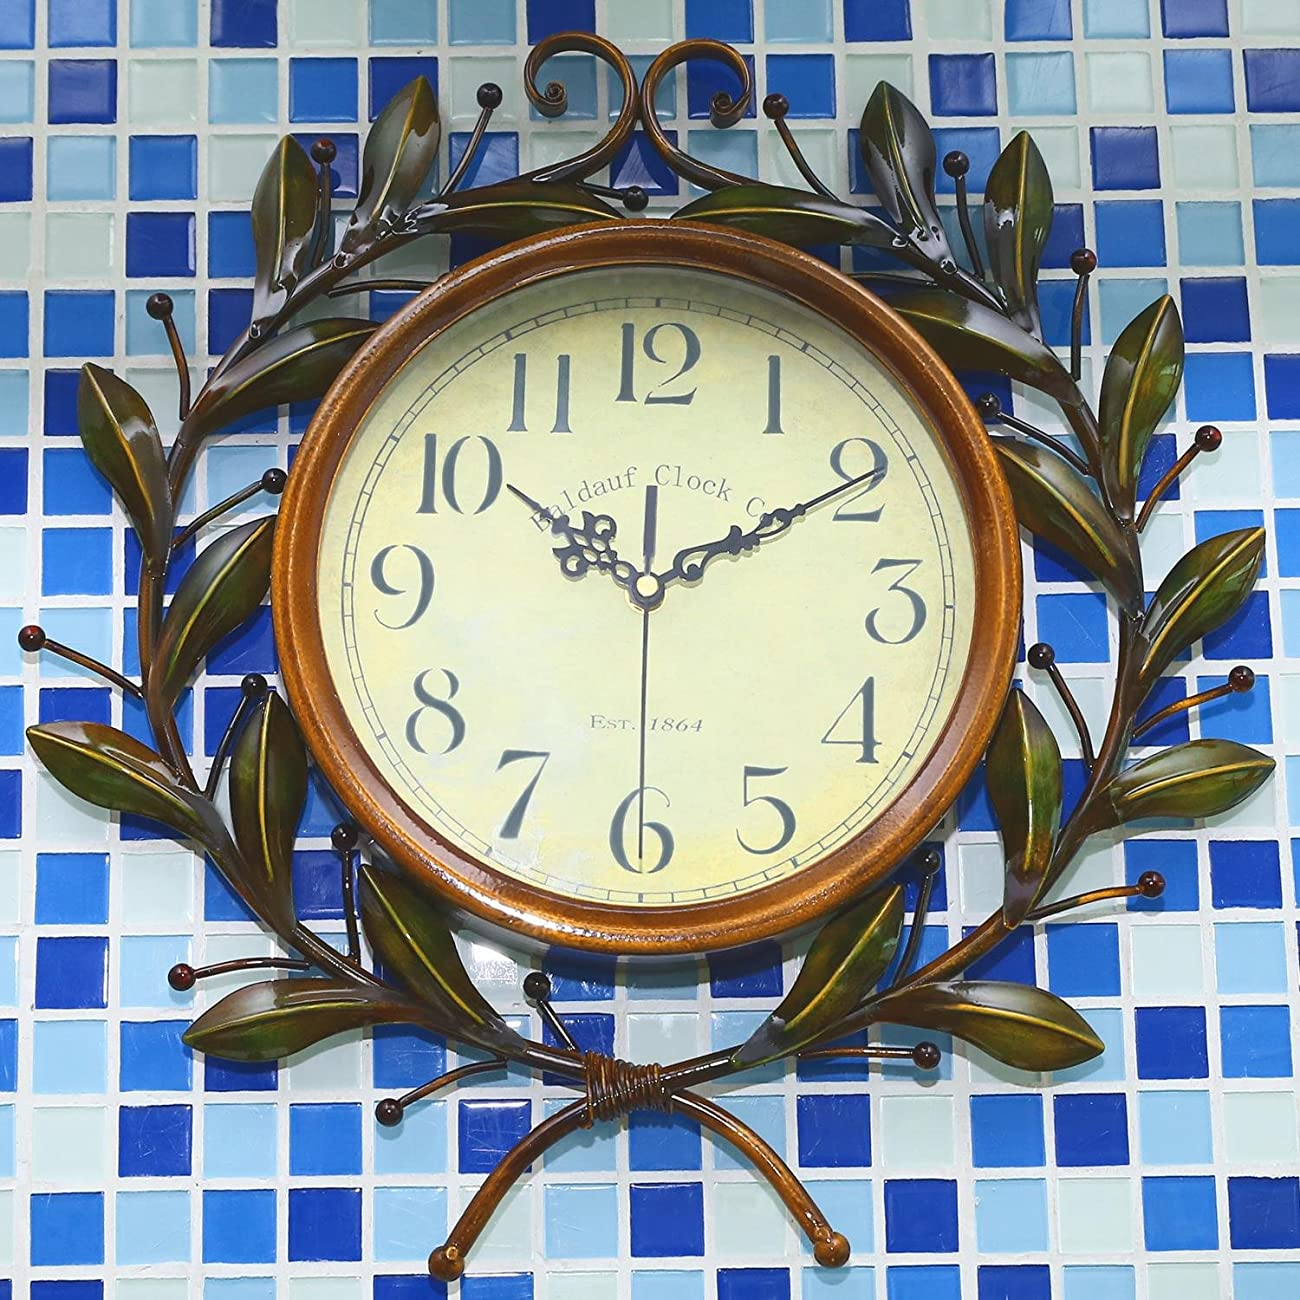 Soledi Vintage Wall Clock Classic Silent Non-ticking For Home Decoration Olive Branch Design 7